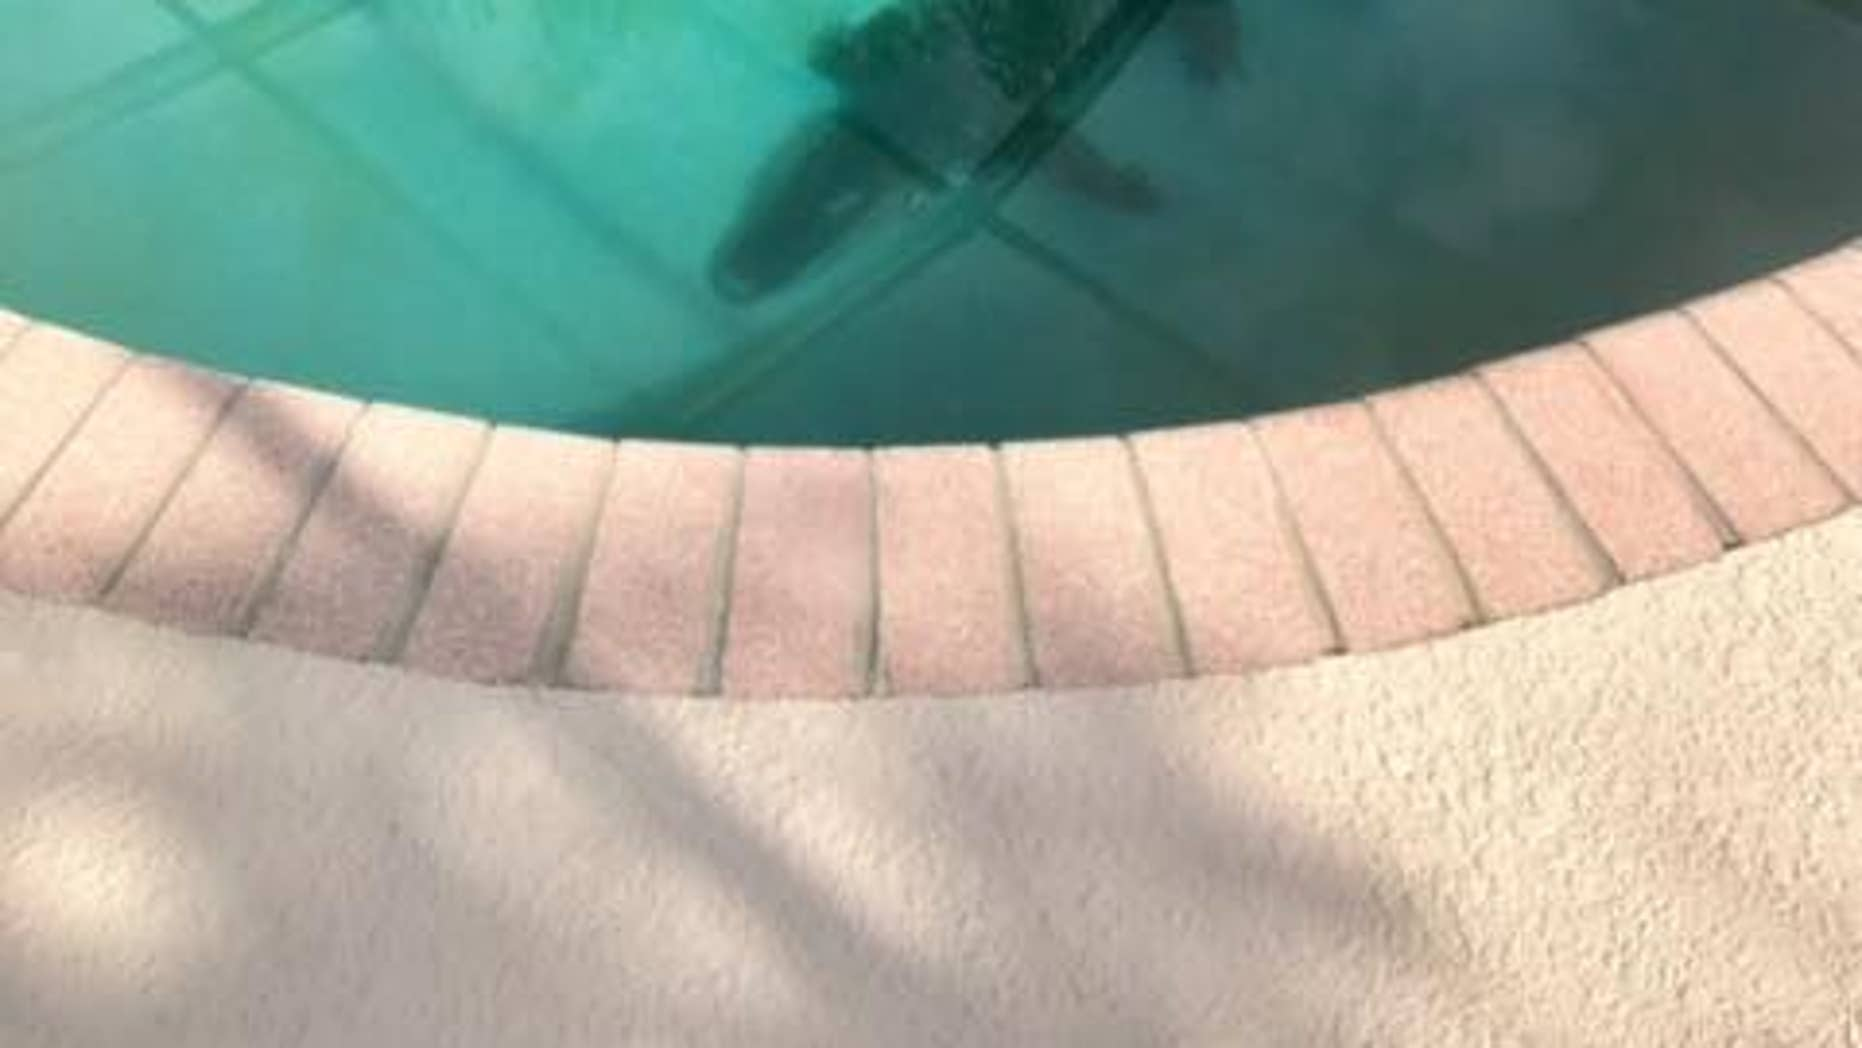 The alligator was swimming in the pool at a Sarasota home Monday morning, police said. (Sarasota County Sheriff's Office)